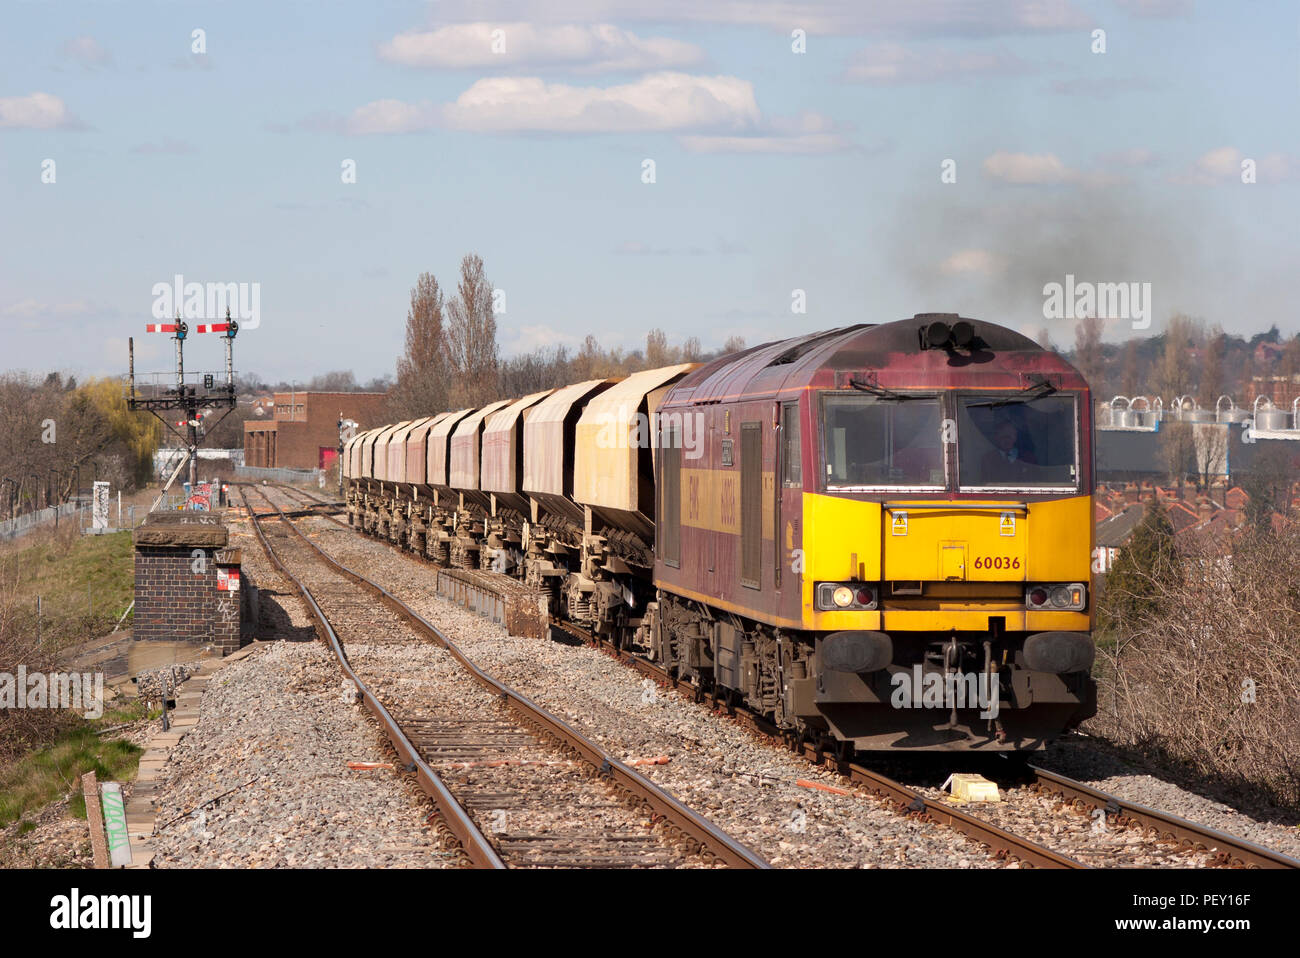 A Class 60 Diesel Locomotive Number 60036 Working Train Of Stone Hopper Wagons Approaches South Greenford In West London